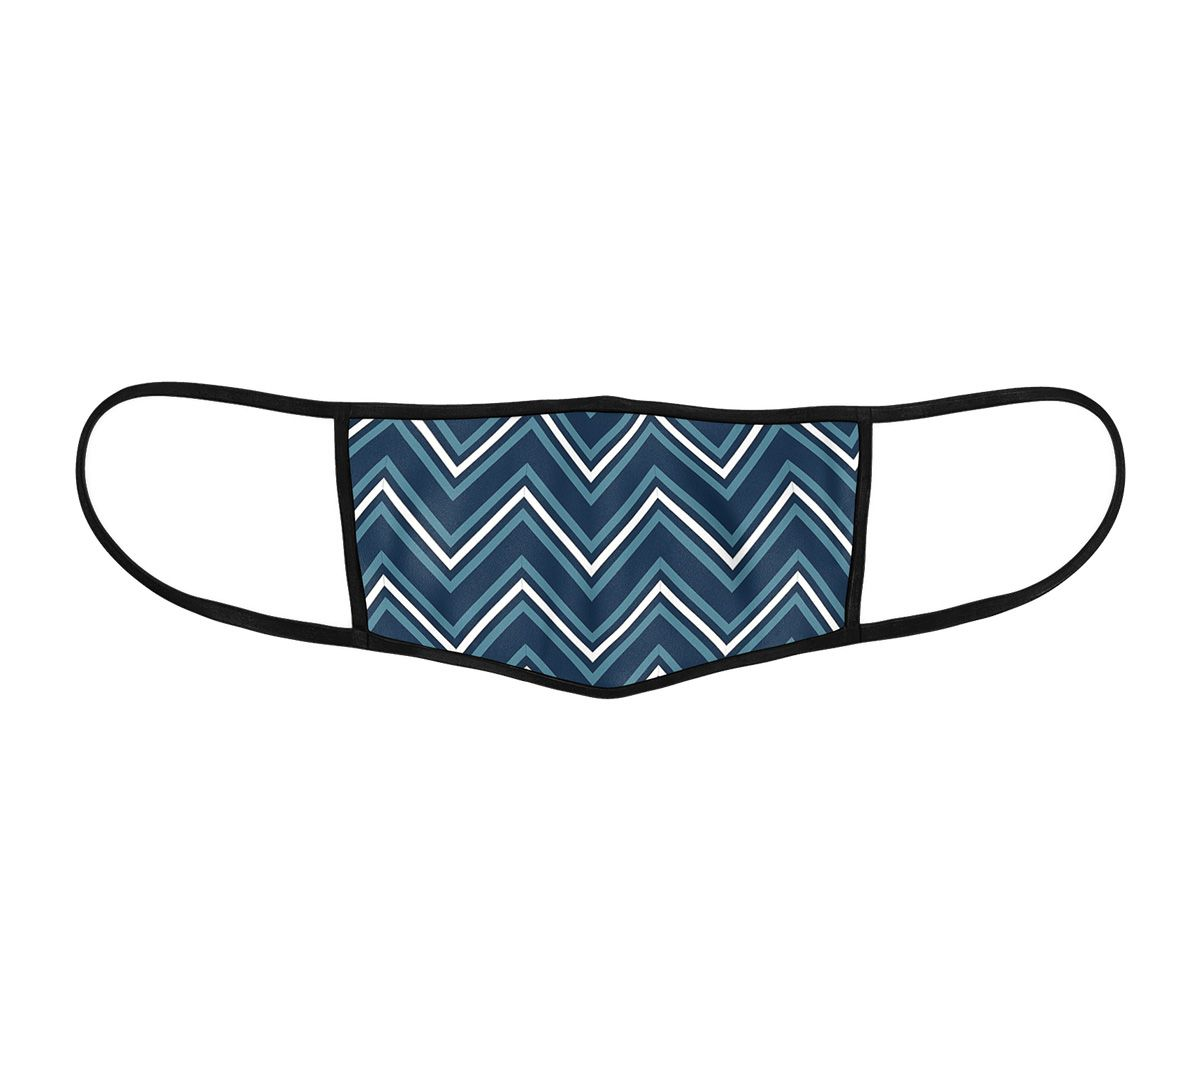 India Circus Design Assembly Protective Face Mask